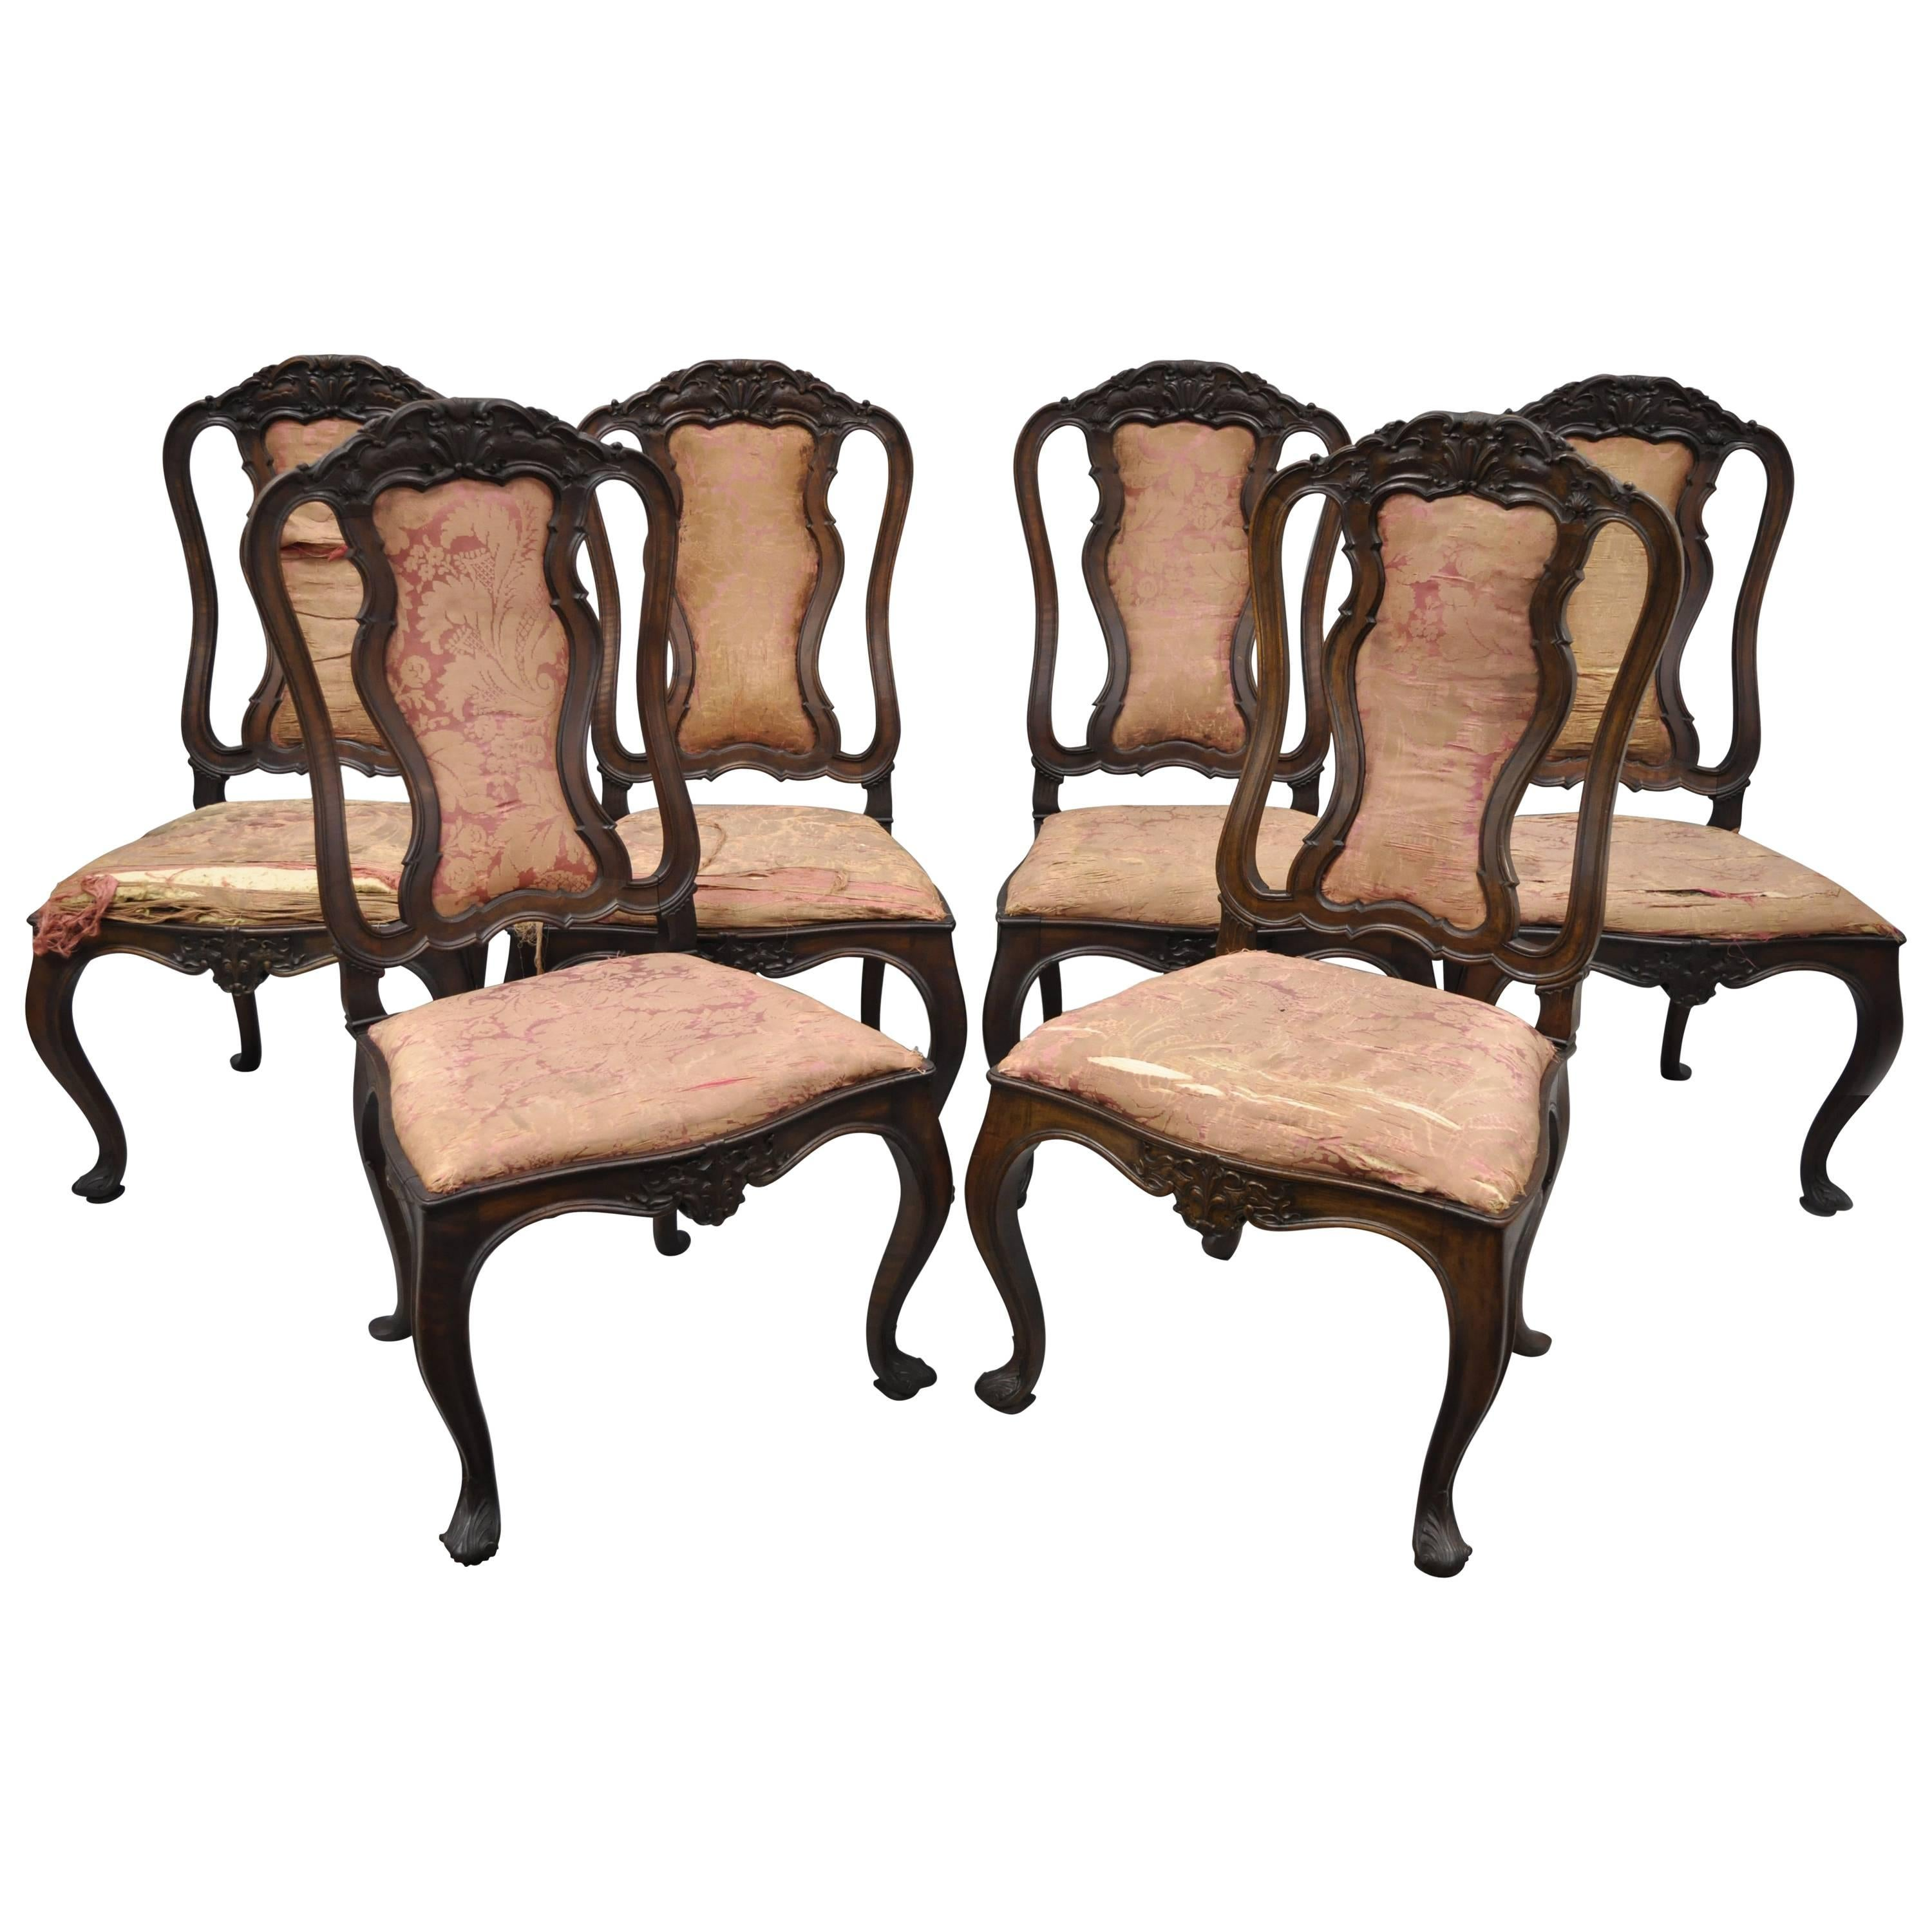 Set of Six Antique Italian Baroque Carved Walnut French Style Dining Chairs